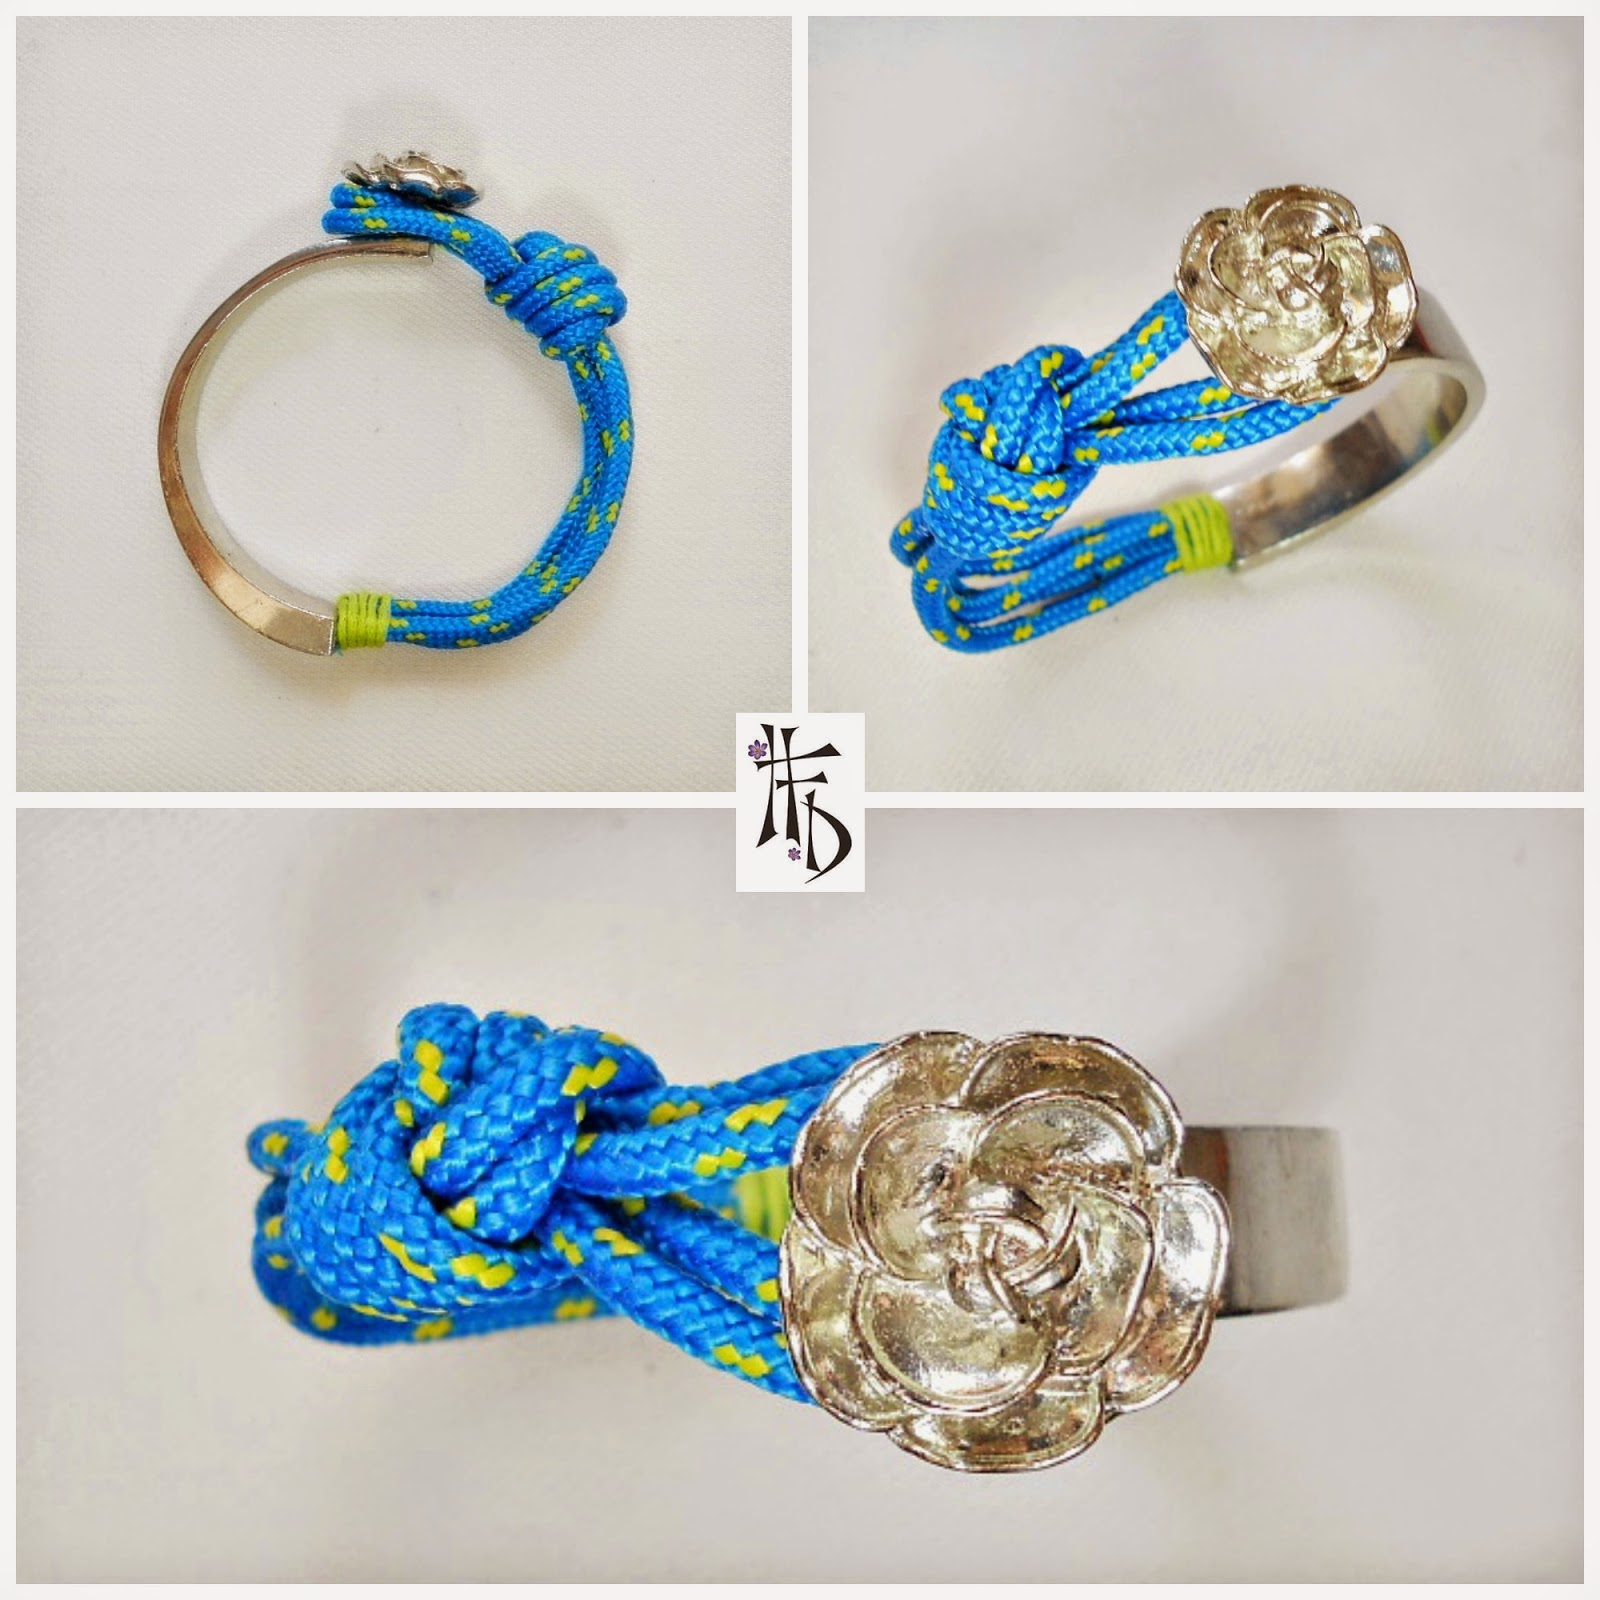 NAVY FLOWER. Media pulsera con cuerda de paracaidas / Media bracelet with parachute cord